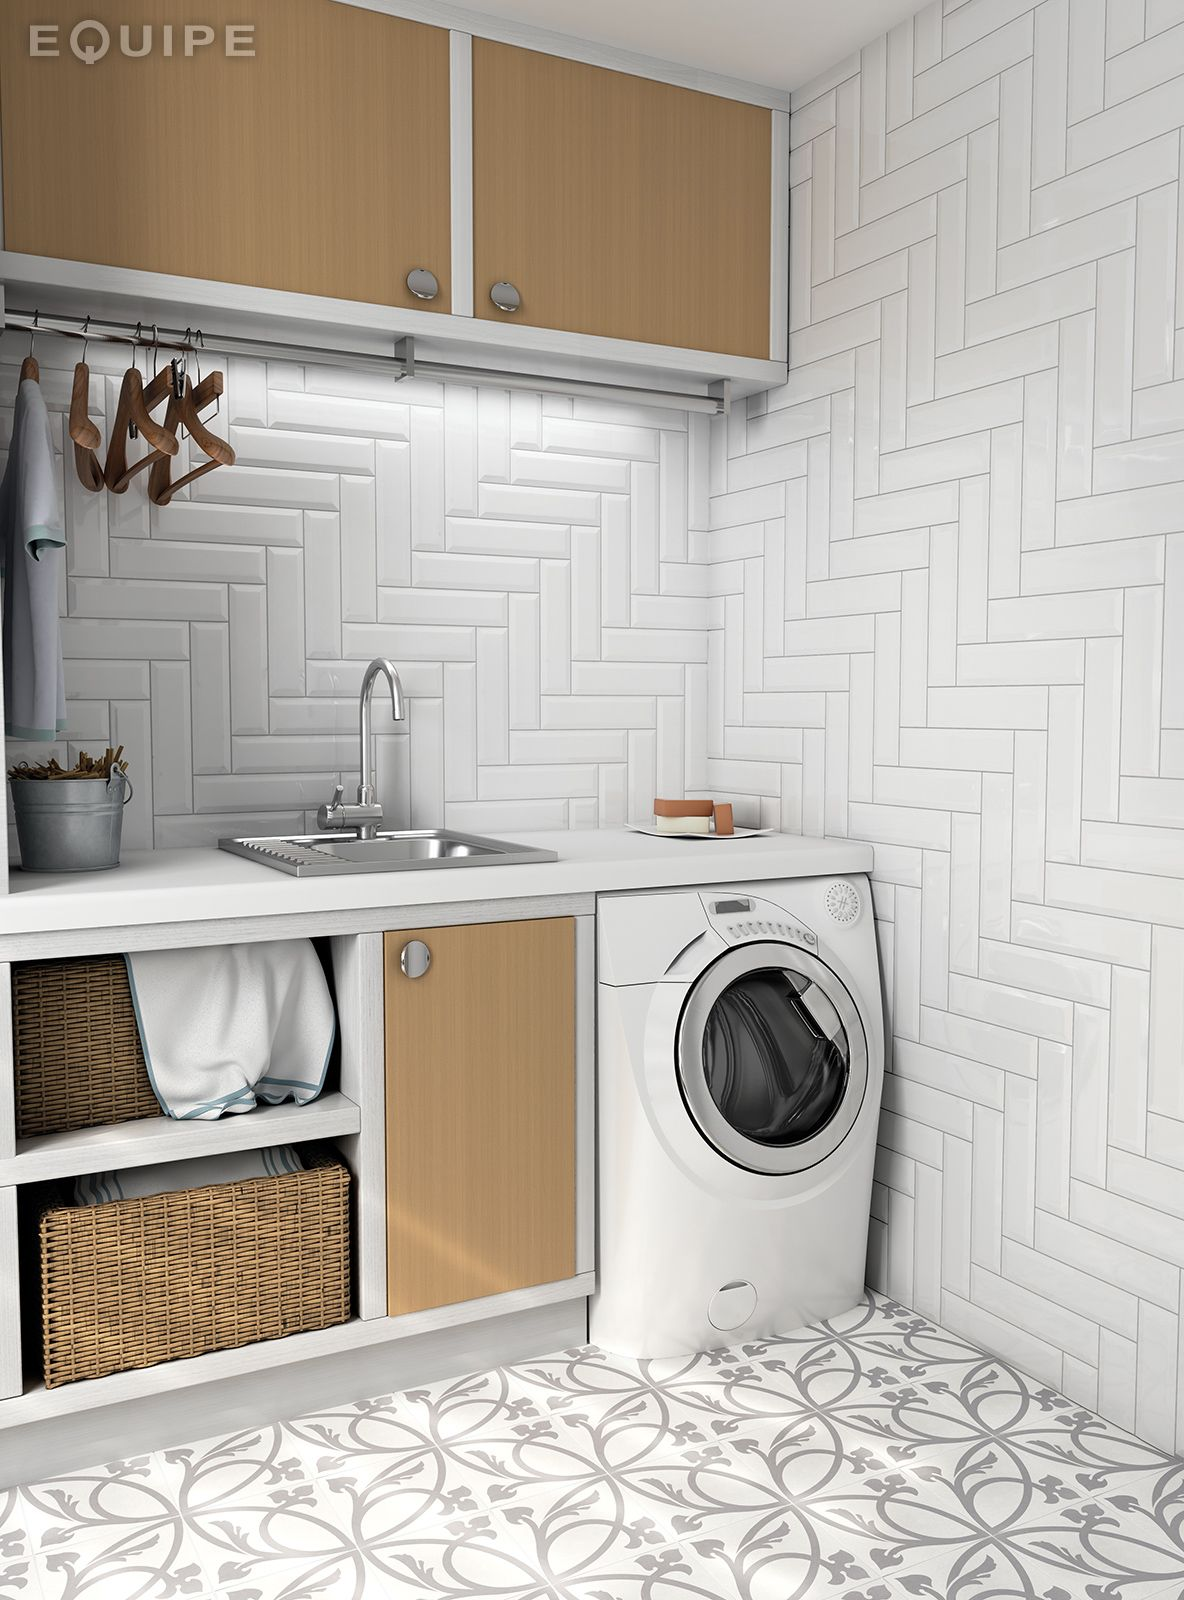 Metro white 7 5x30 salle de bain pinterest lavaderos for Lavaderos ideas